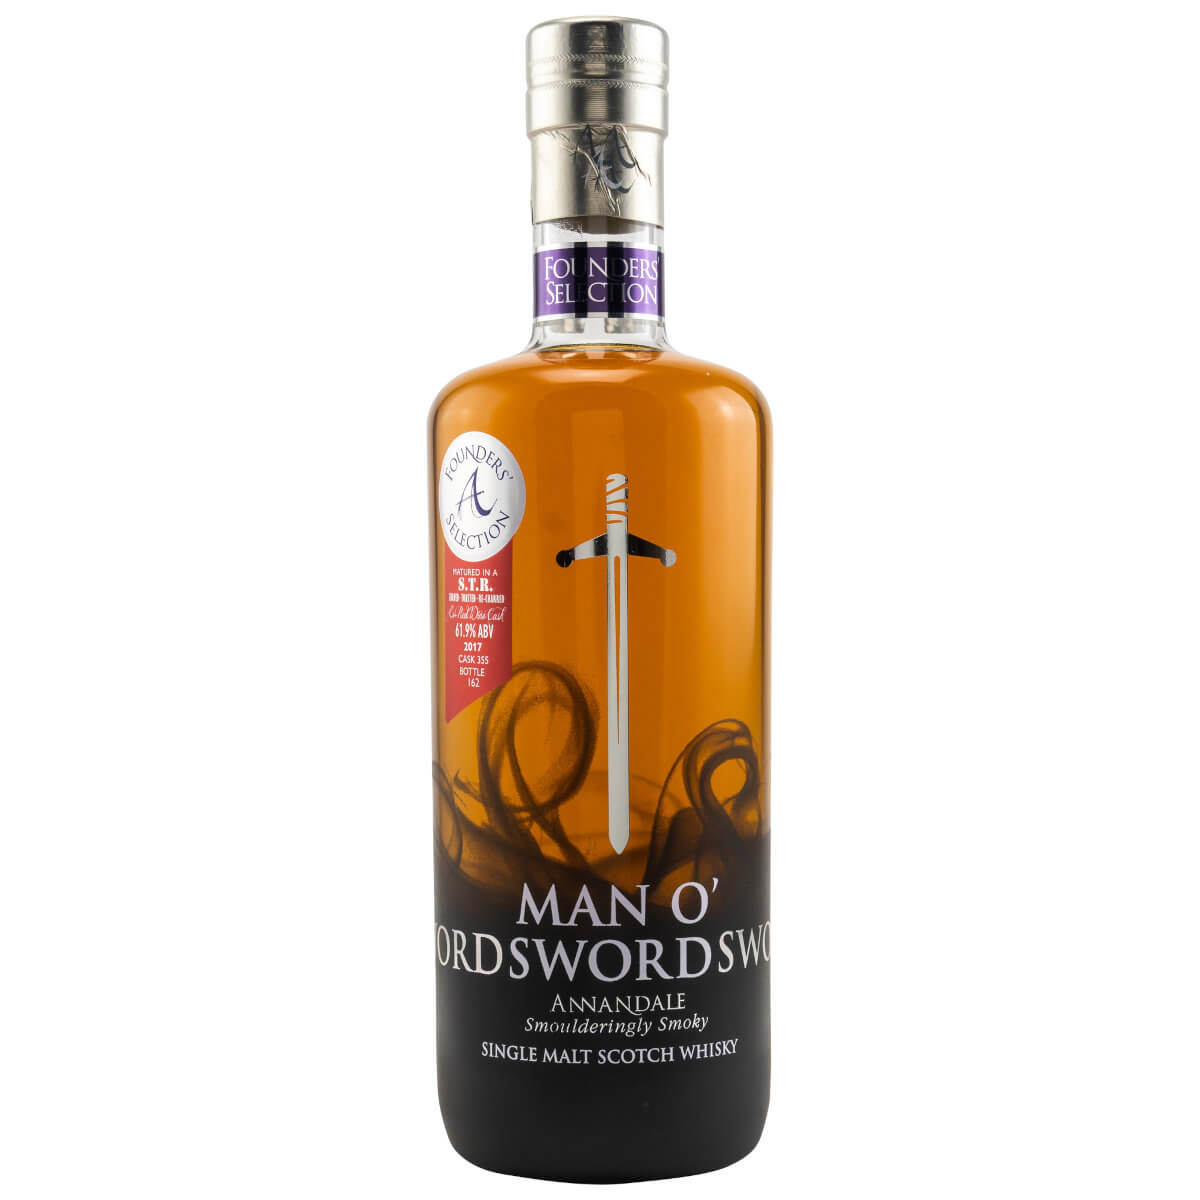 Annandale Man O' Sword Lowlands Whisky